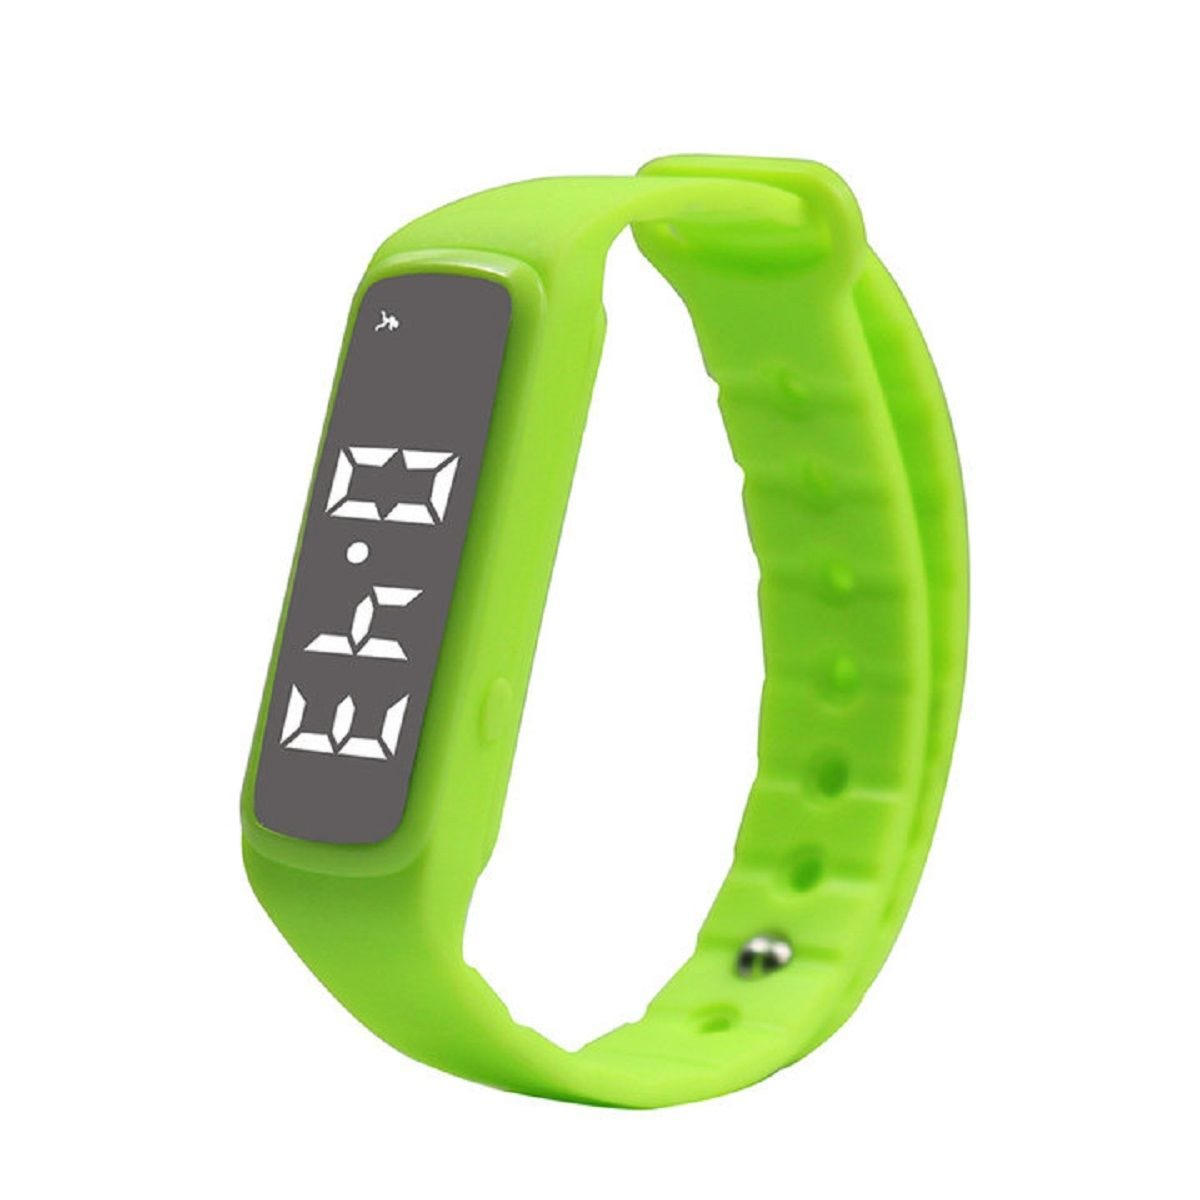 Aquarius AQ114 Teen Fitness Tracker - Green